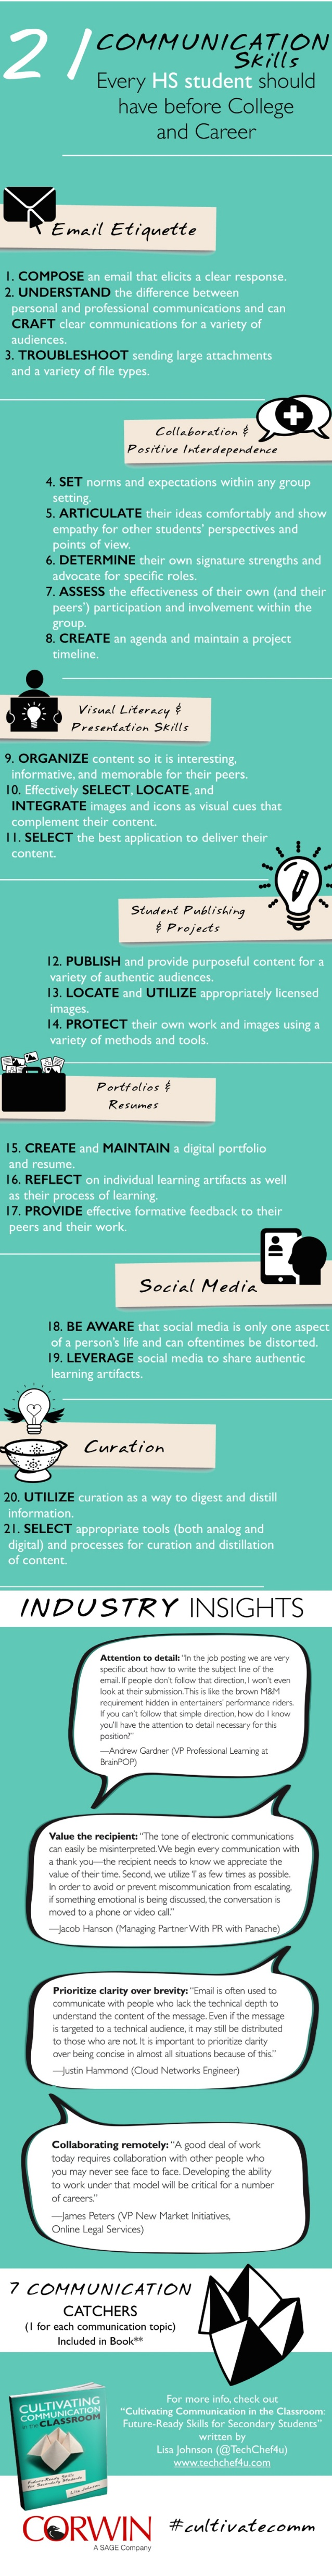 21 Communication Skills Every HS student should have